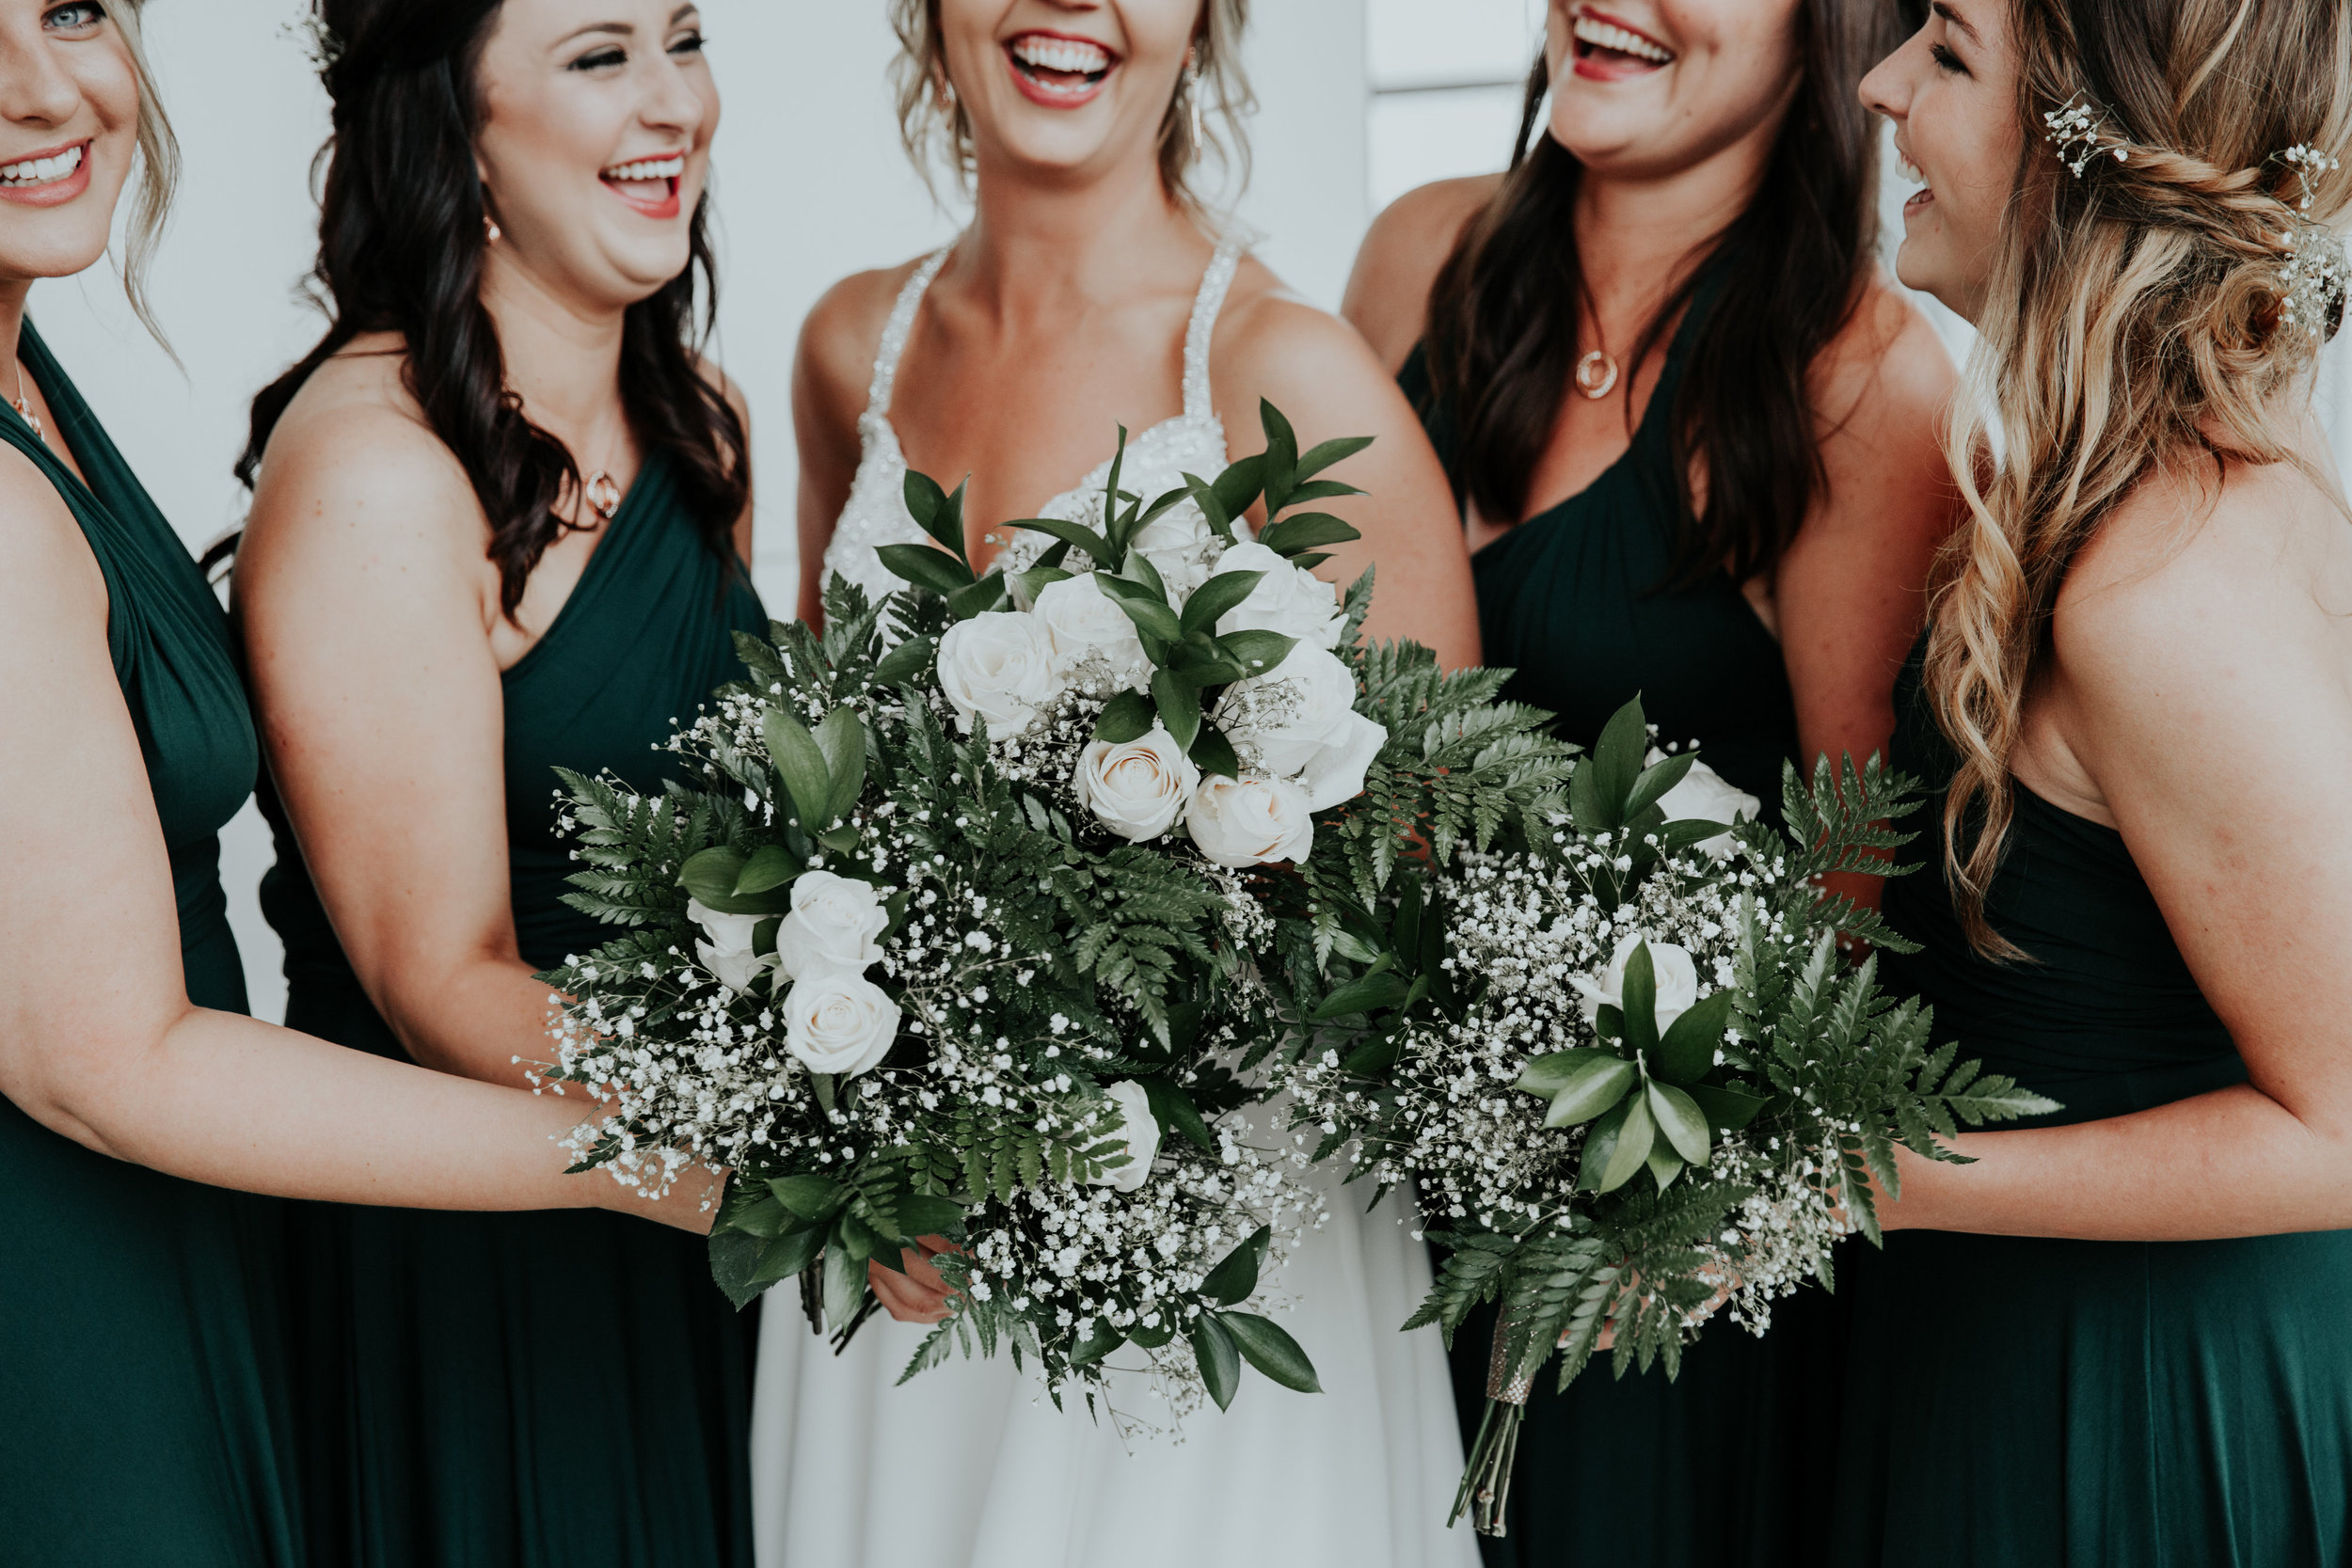 Emerald bridesmaid dresses | Be Images